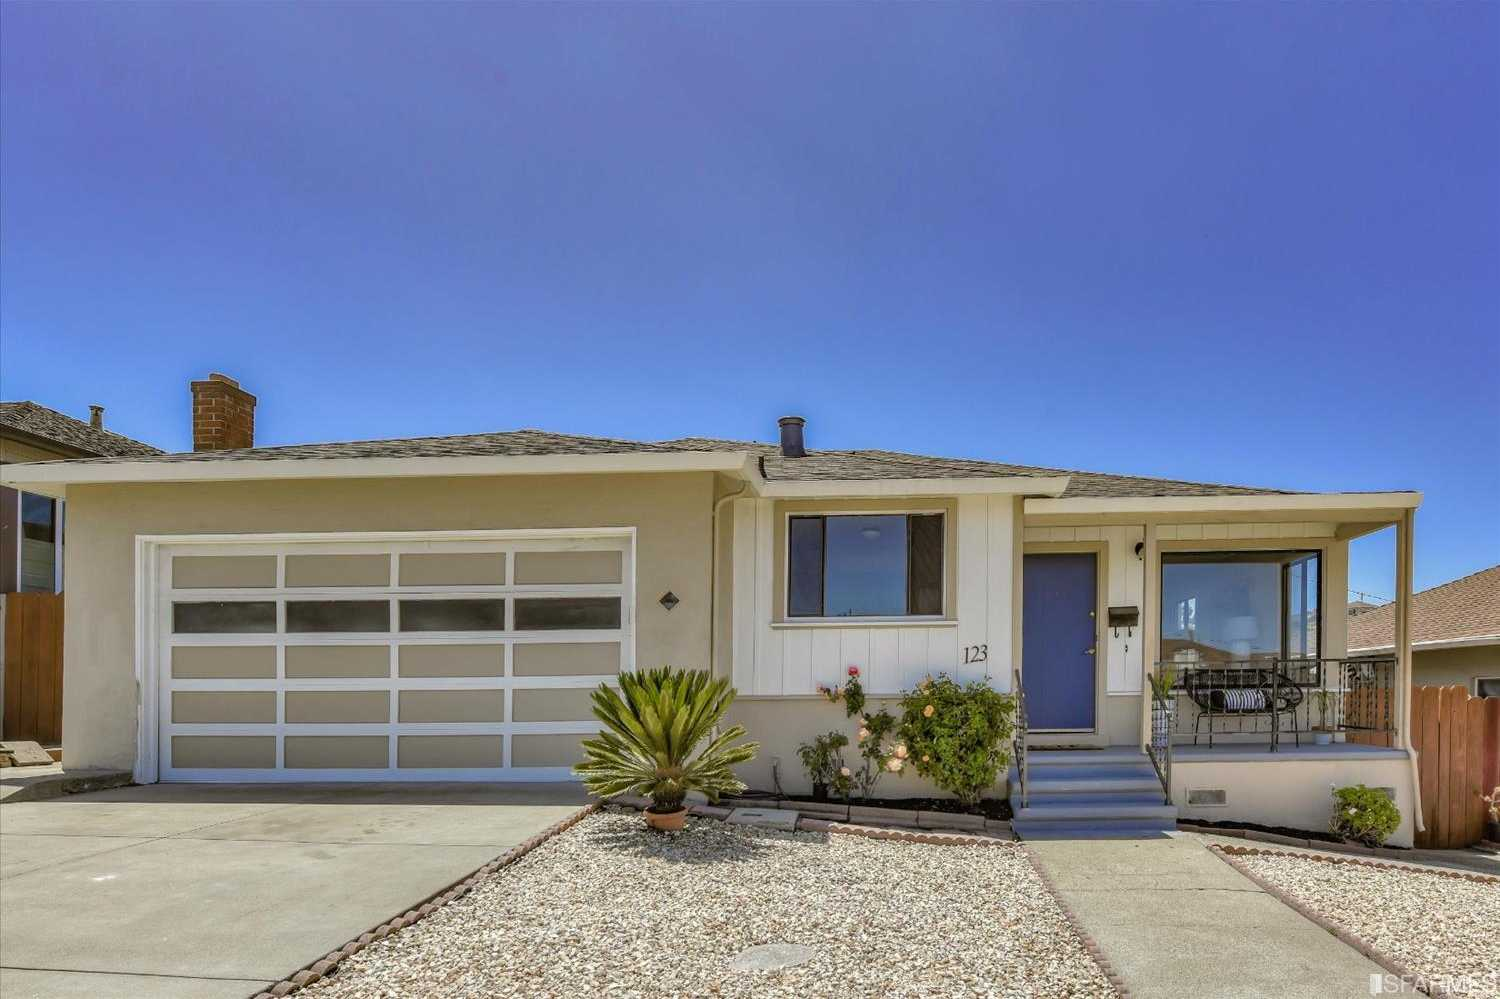 $1,125,000 - 3Br/2Ba -  for Sale in South San Francisco